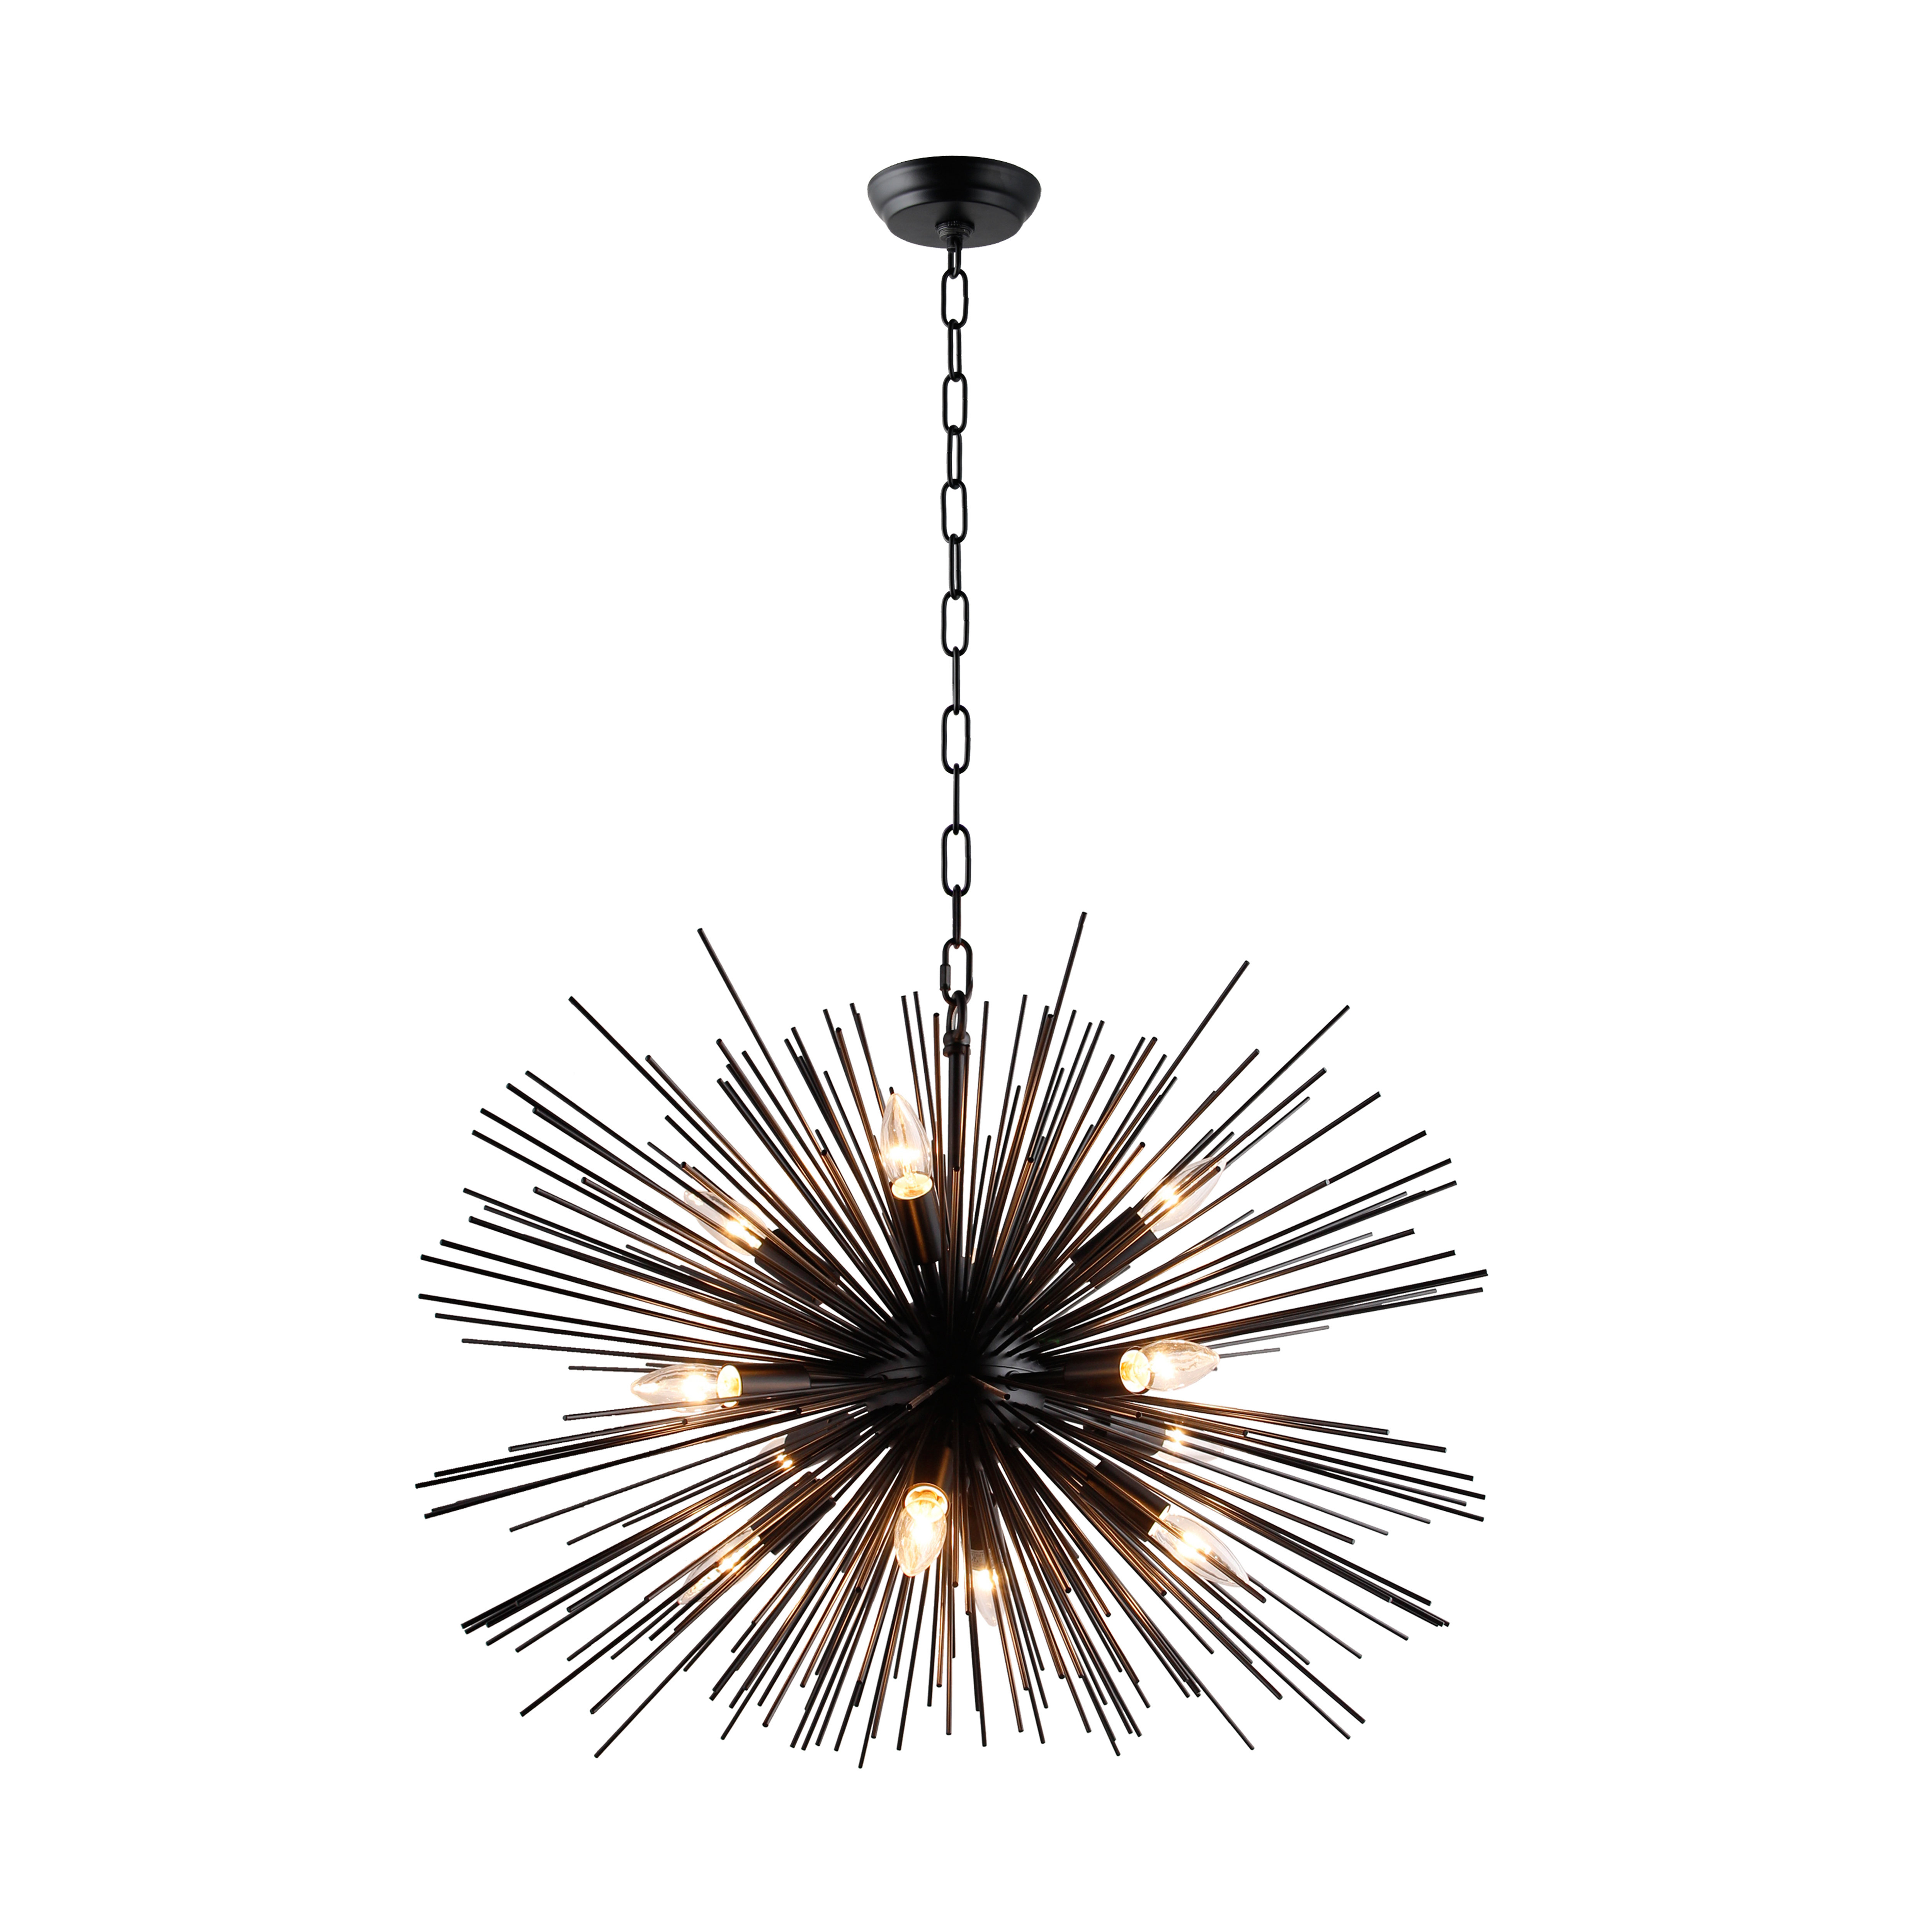 Current Modern Rustic Interiors Nelly 12 Light Sputnik Chandelier Pertaining To Nelly 12 Light Sputnik Chandeliers (View 6 of 25)